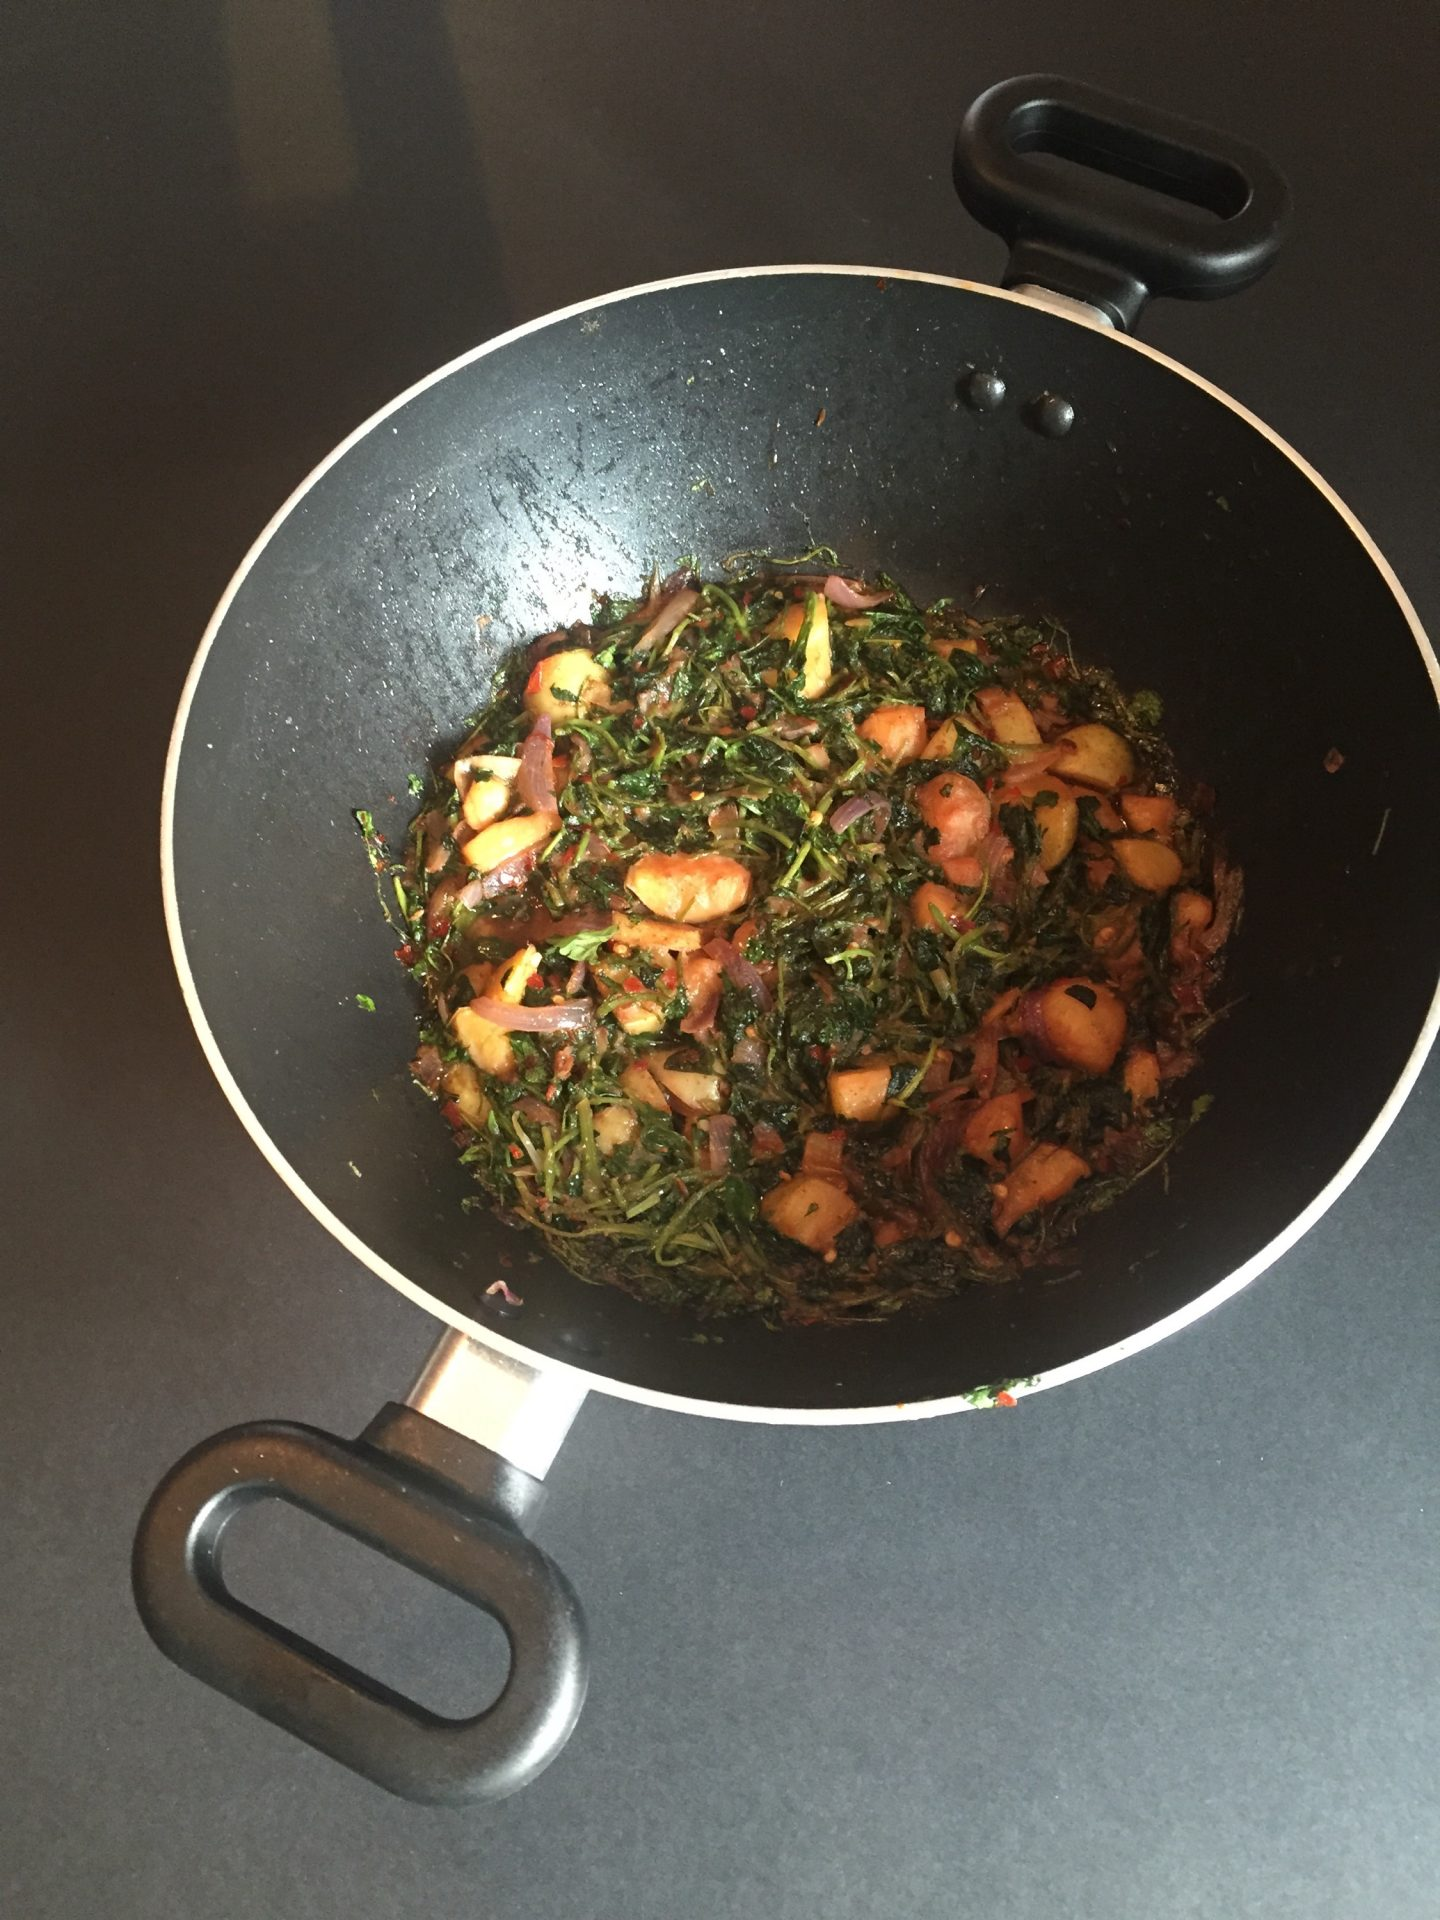 Spiced and sautéed watercress and potatoes